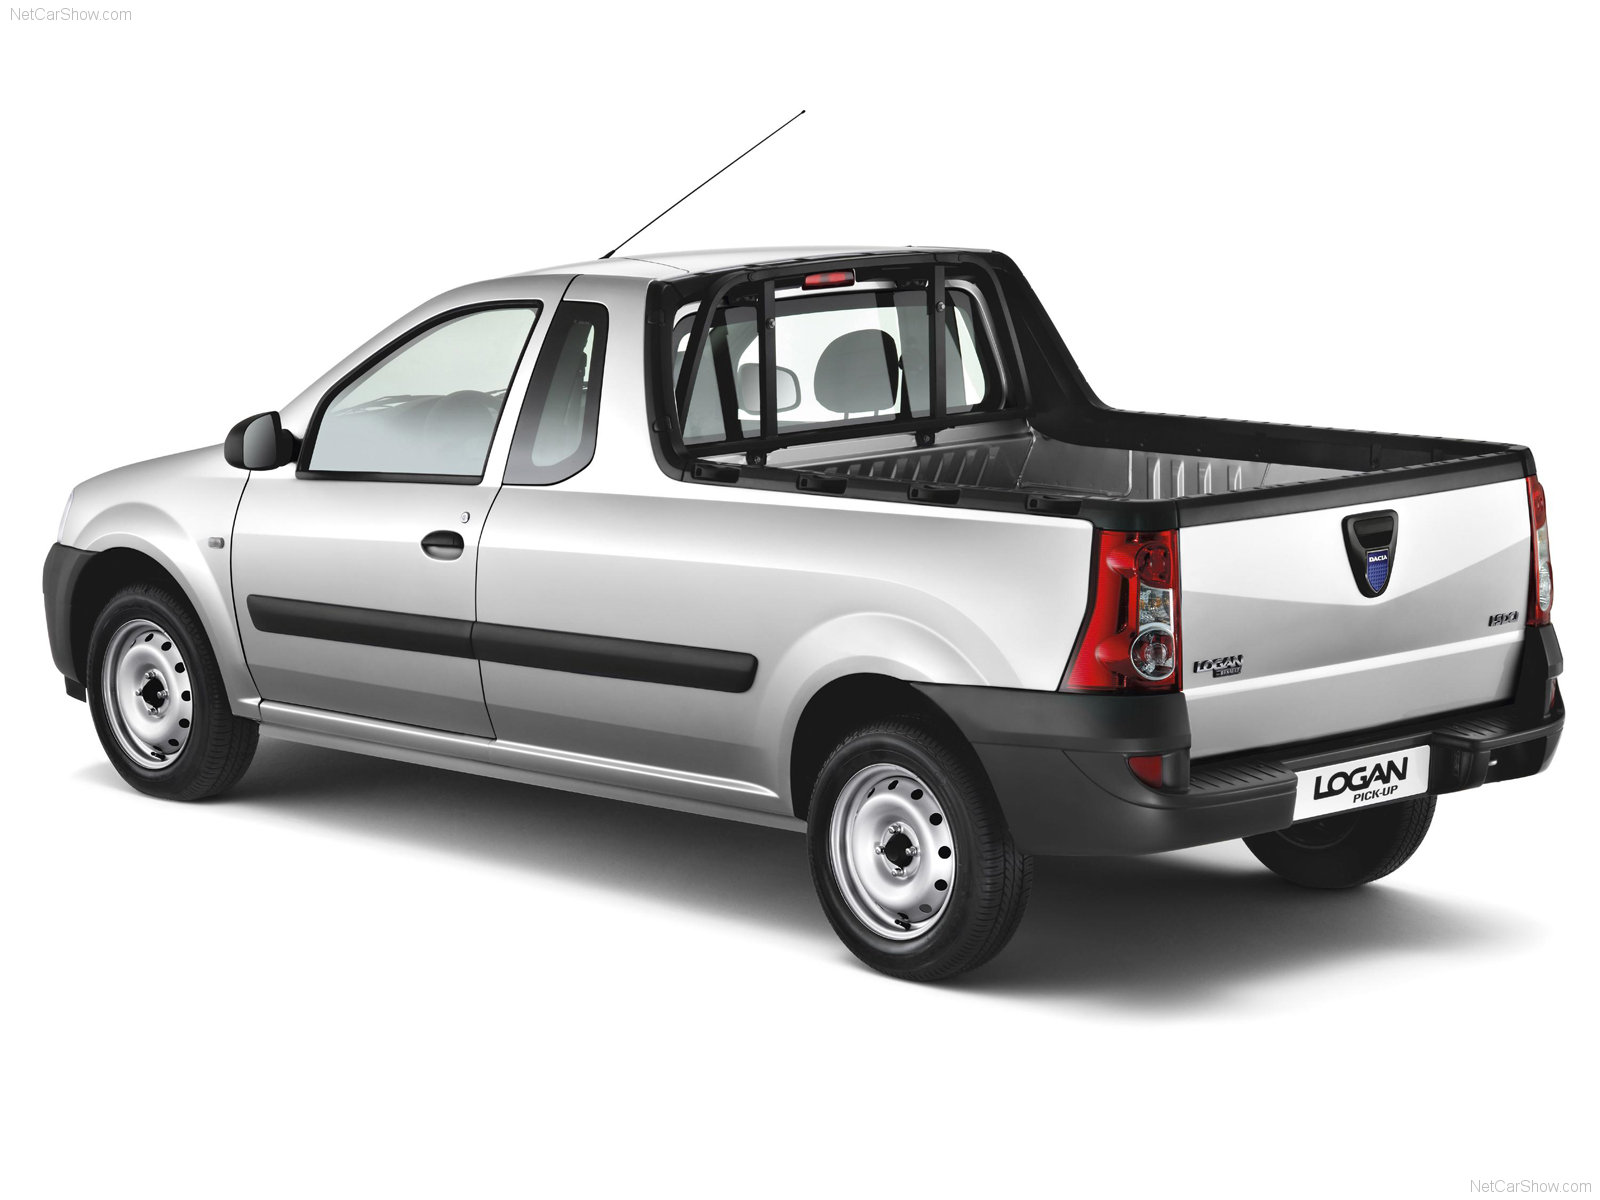 dacia logan pickup photos news reviews specs car. Black Bedroom Furniture Sets. Home Design Ideas